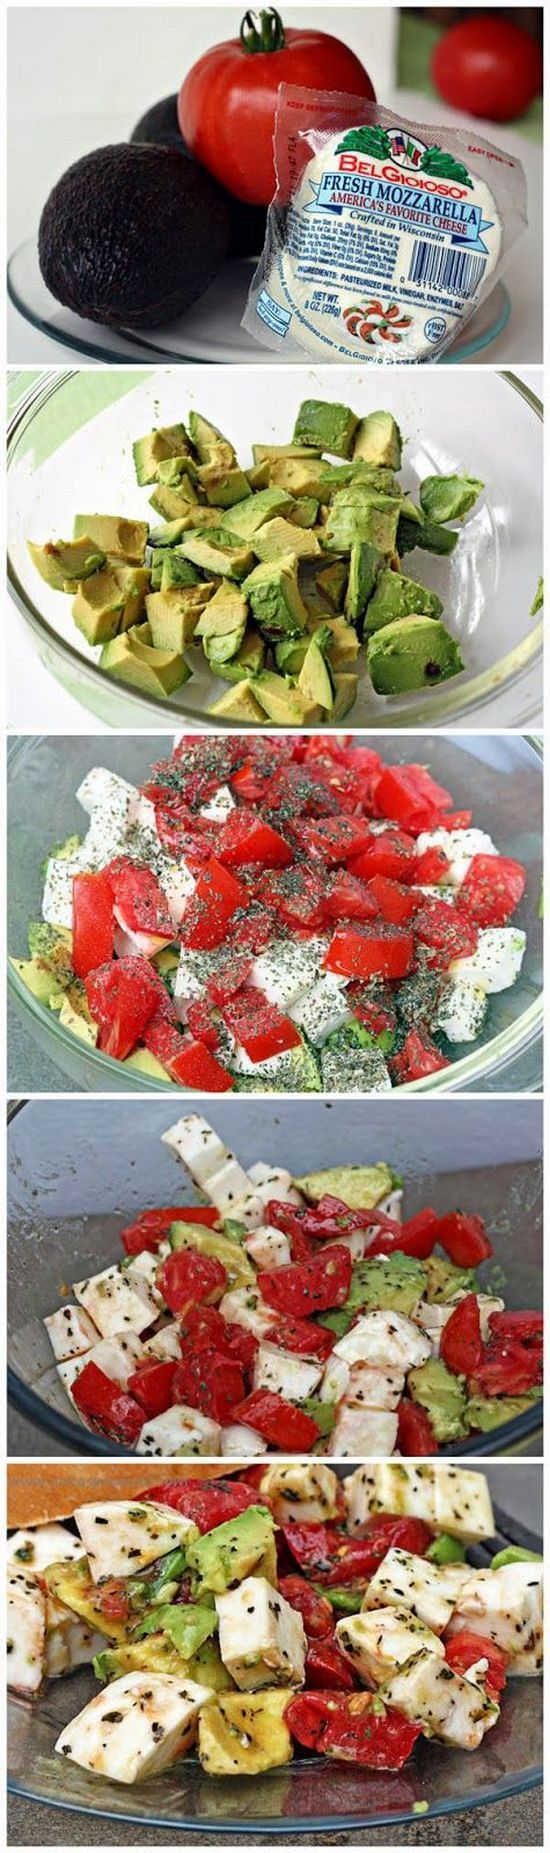 Avocado / Tomato /Mozzarella Salad | Foodsweet | foodsweet